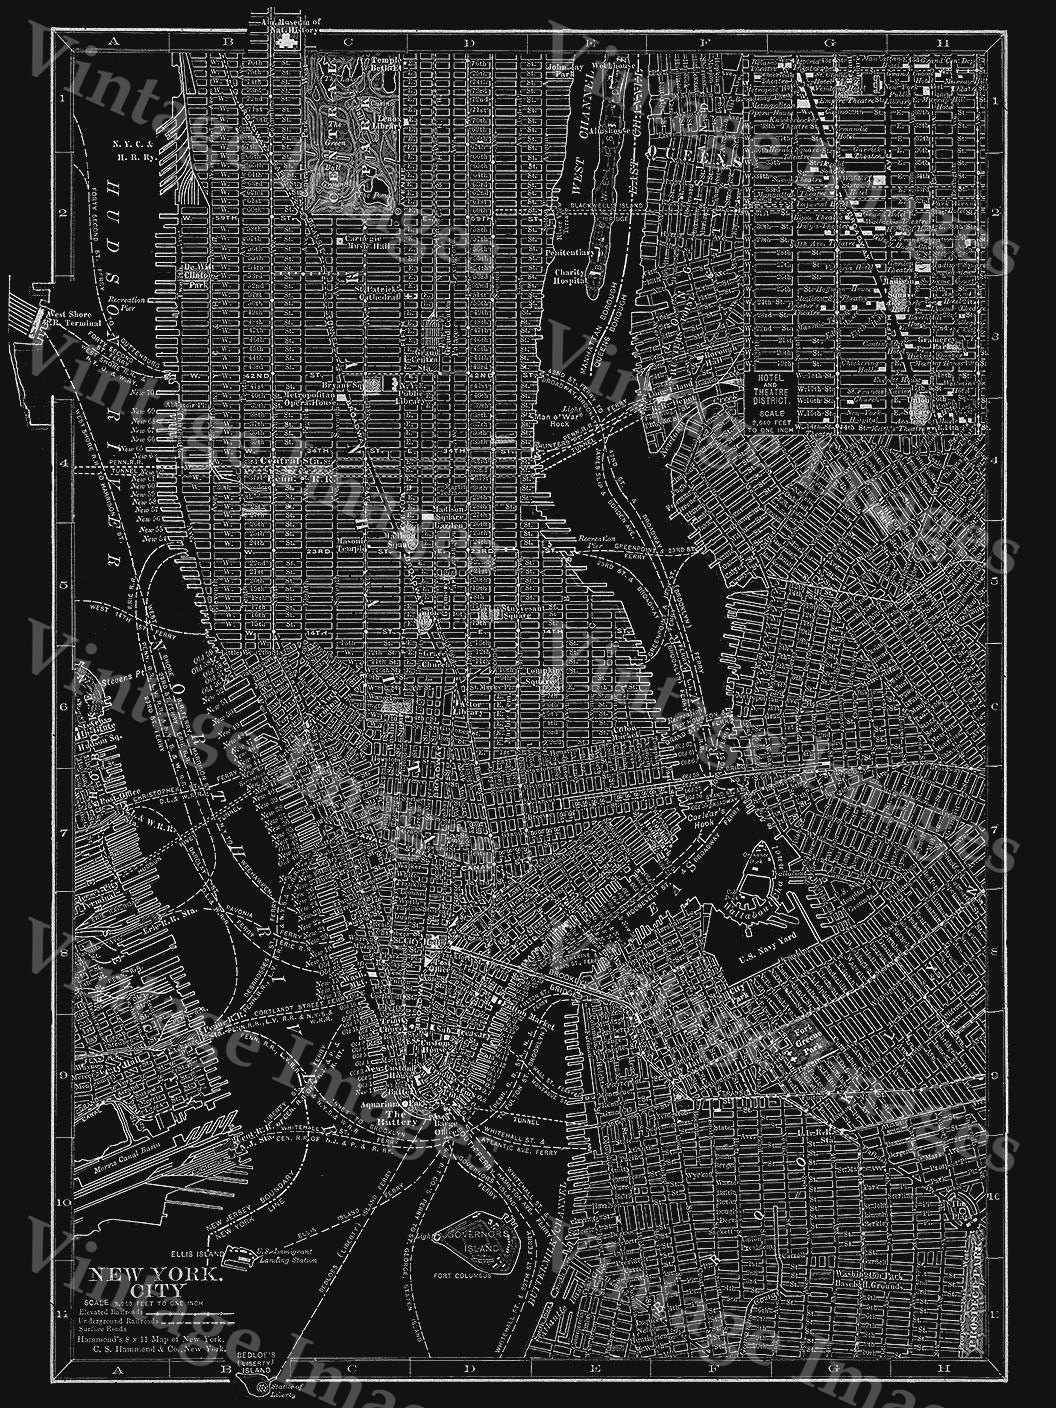 New York Map Black And White.New York City Manhattan Street Map 1910 Historic Black And White